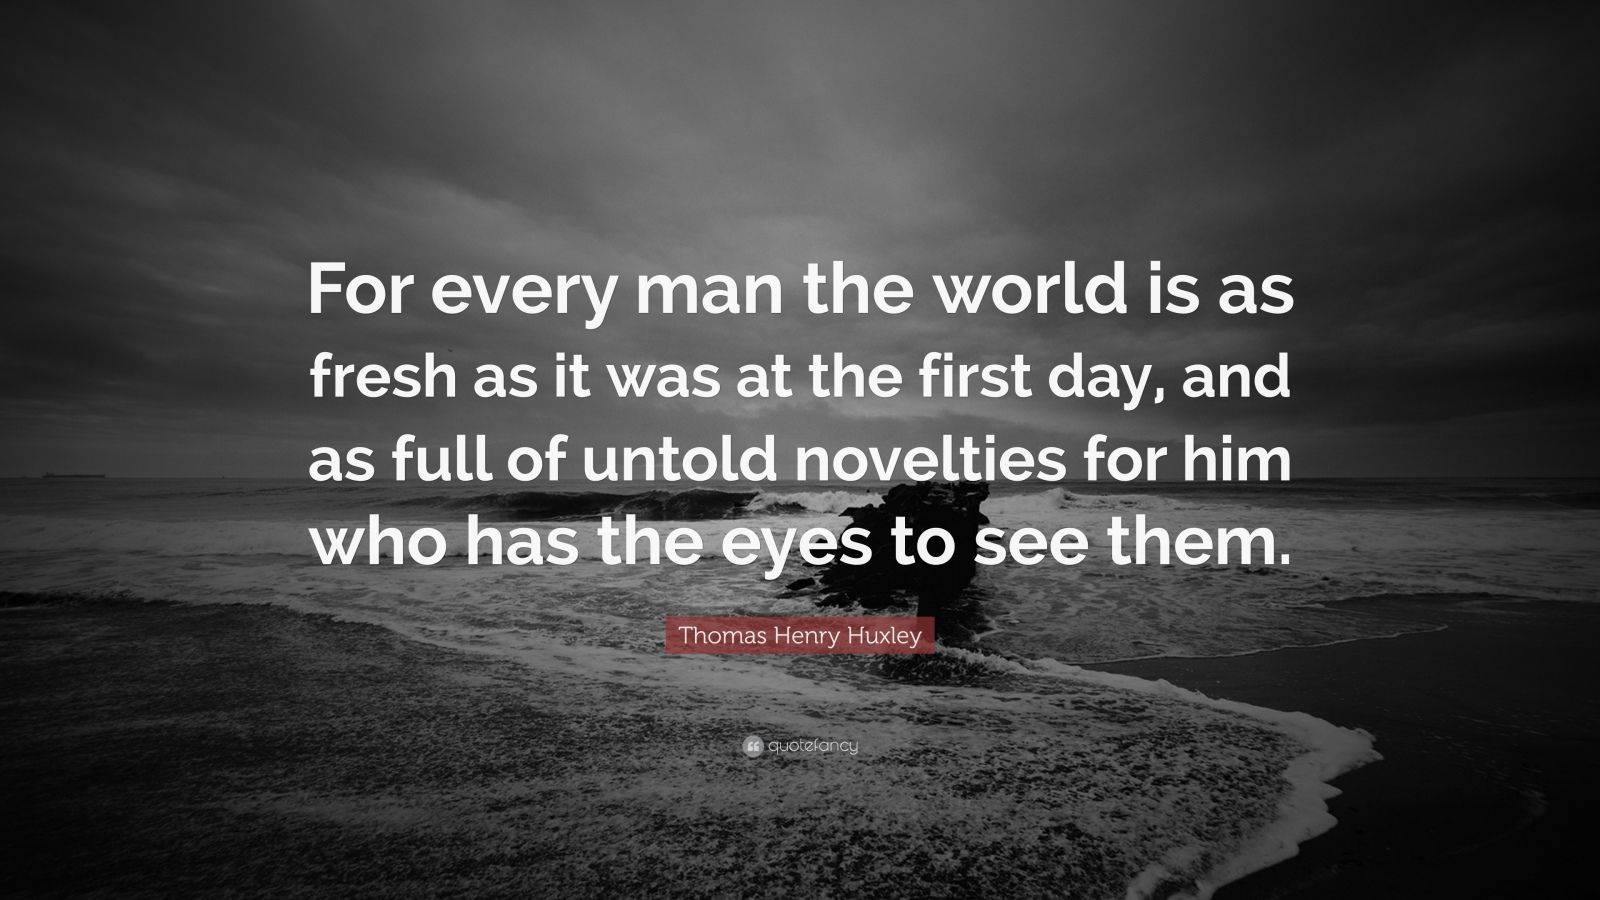 """Thomas Henry Huxley Quote: """"For every man the world is as fresh as it was at the first day, and as full of untold novelties for him who has the eyes to see them."""""""